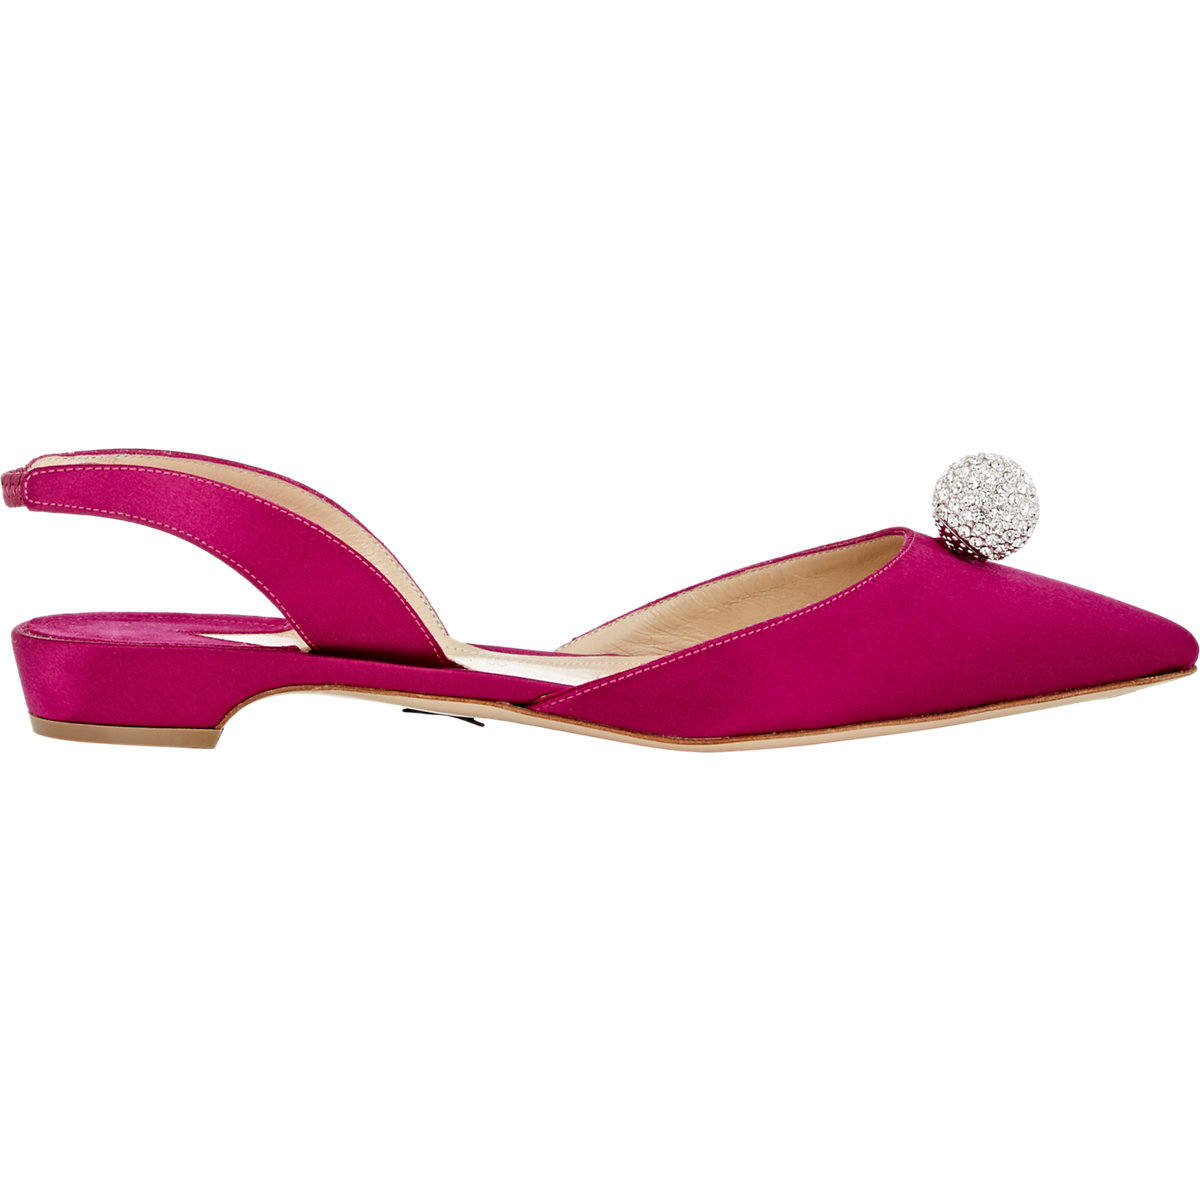 6b55174aebed paul-andrew-pink -satin-crystal-ball-slingback-flats-product-0-291010284-normal.jpeg